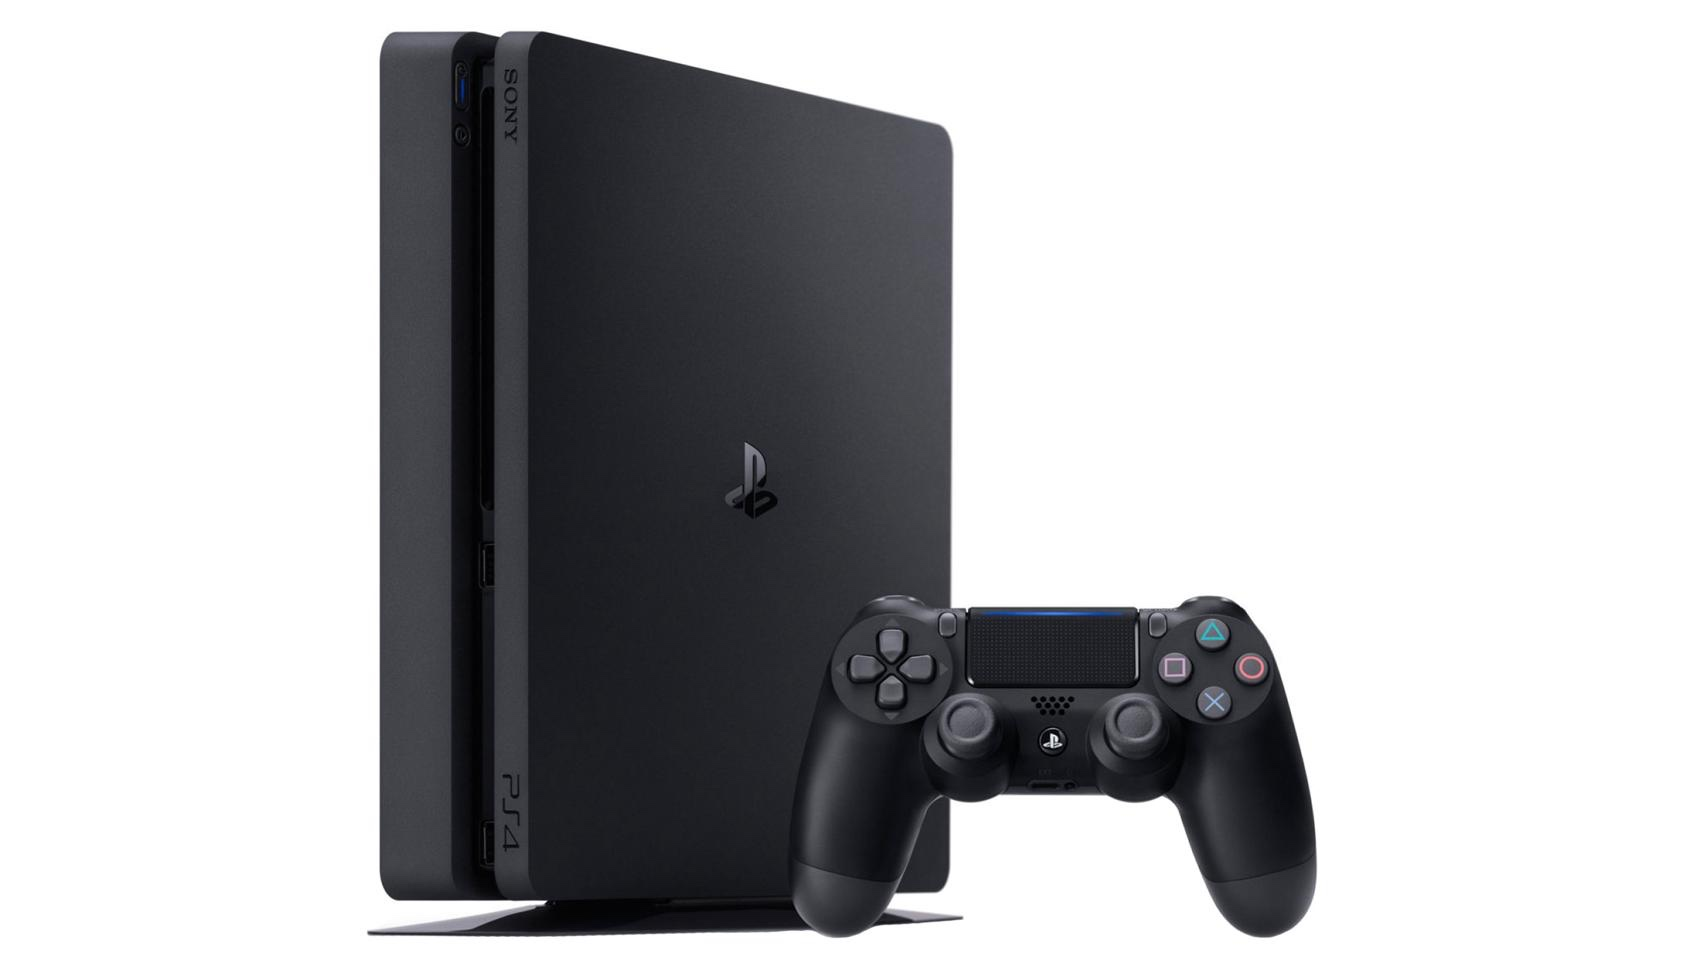 9 Best Video Game Consoles In 2017 Including Playstation 4